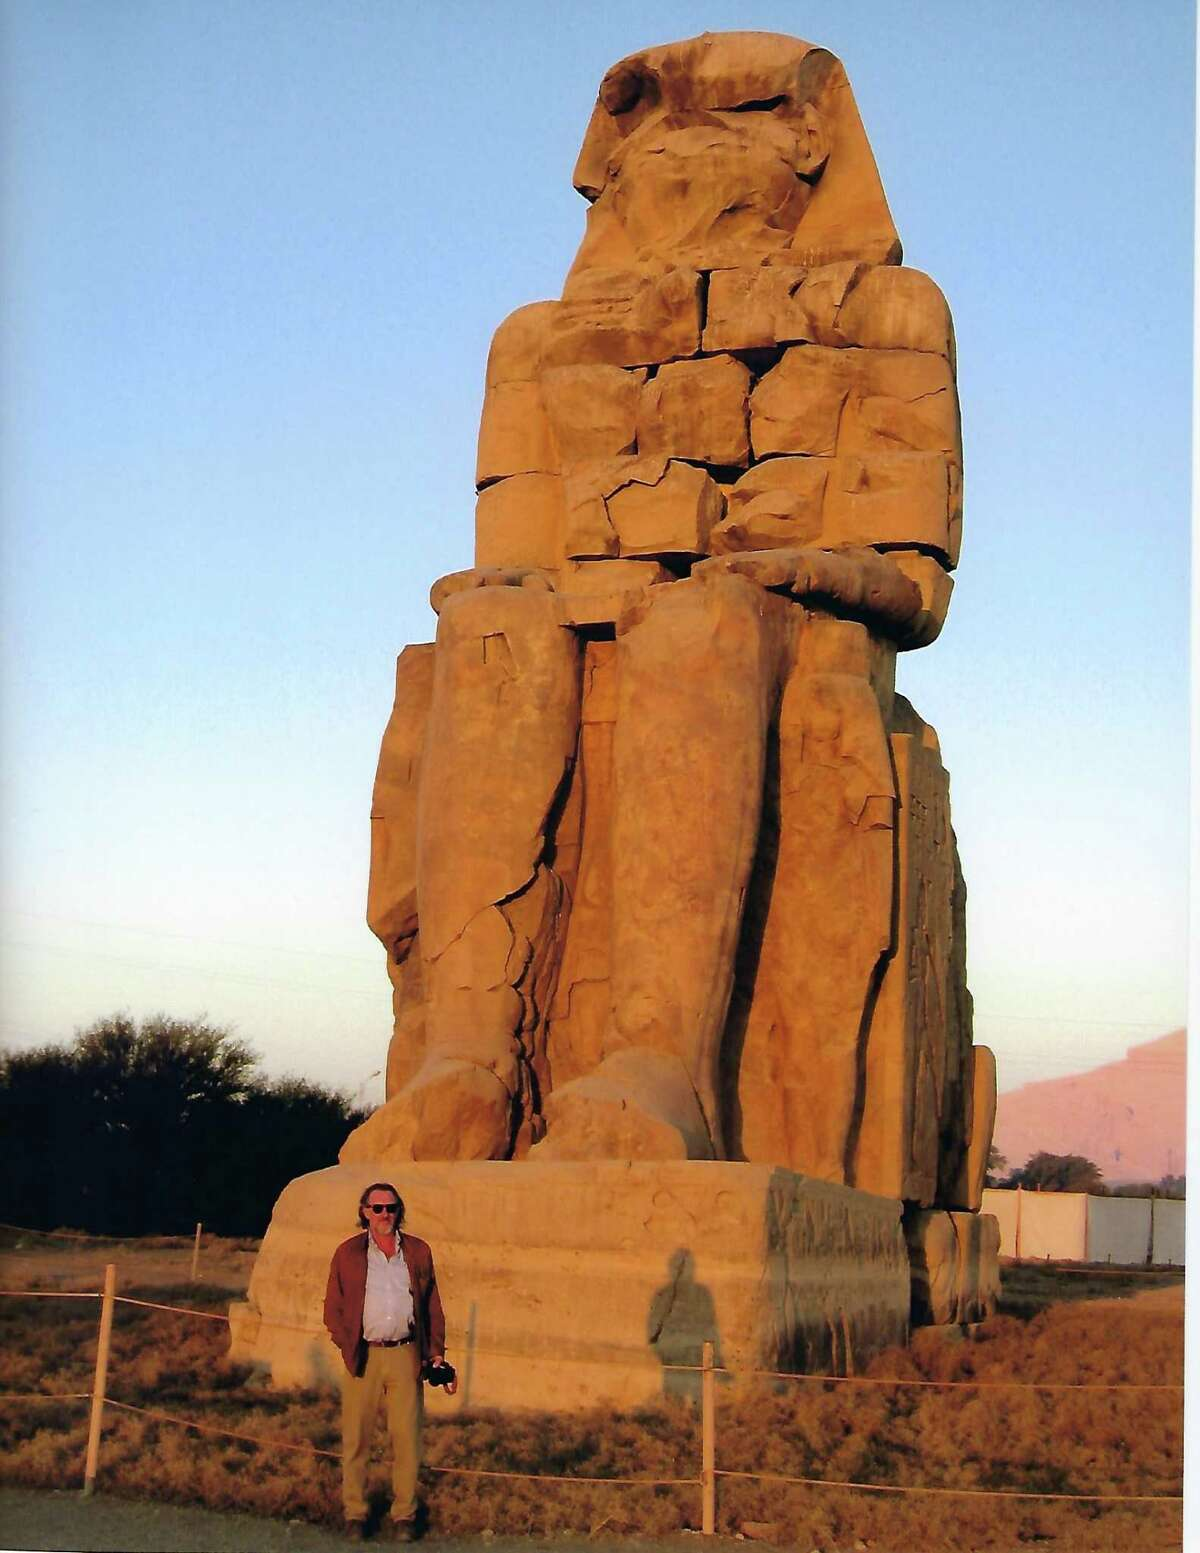 Art historian and lecturer David Brauer photographed in Egypt in 2006.